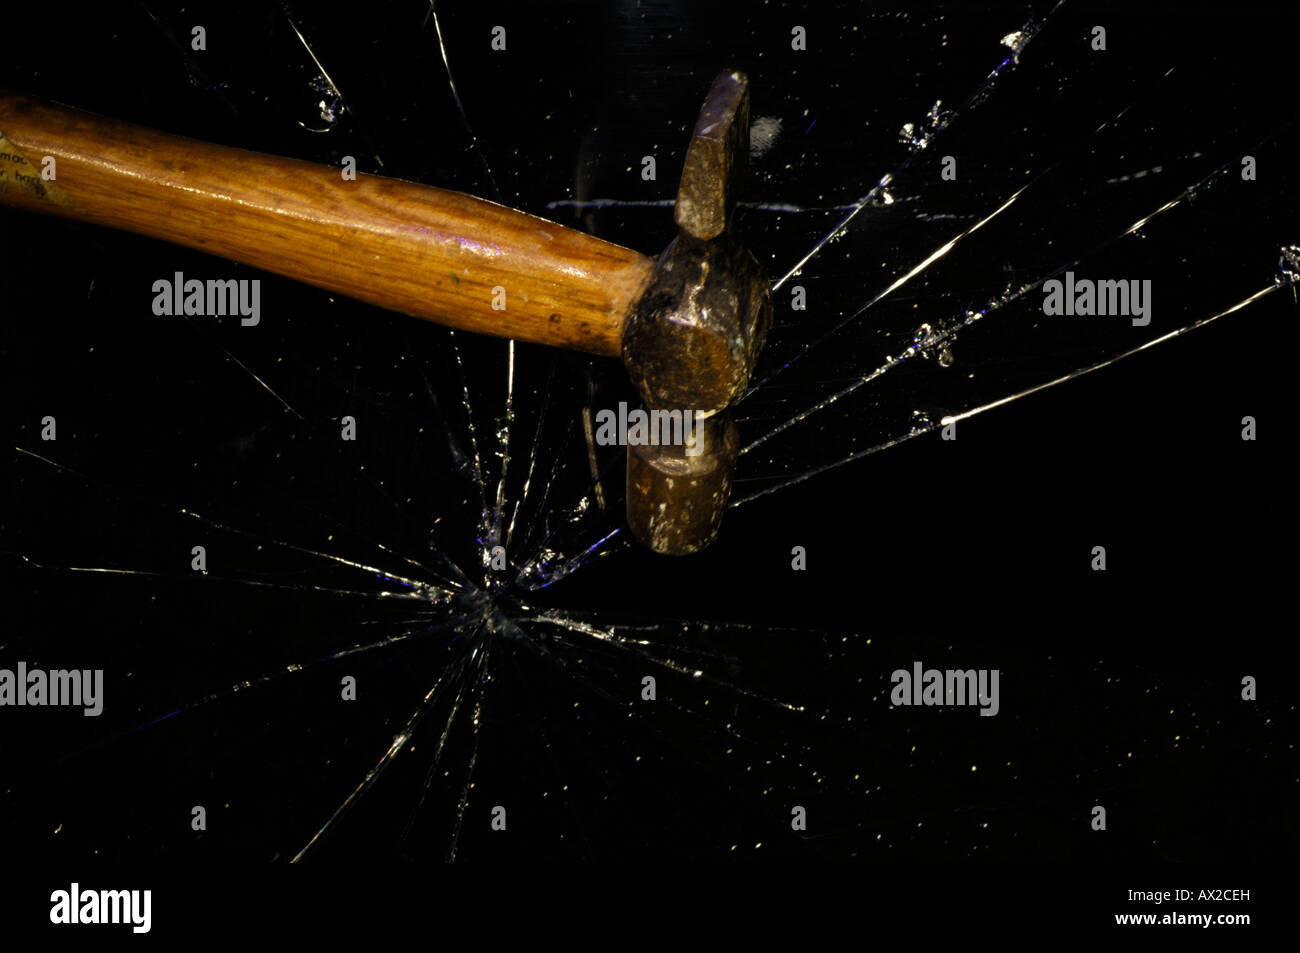 a hammer smashing through a pane of glass or window shattering the glass - Stock Image